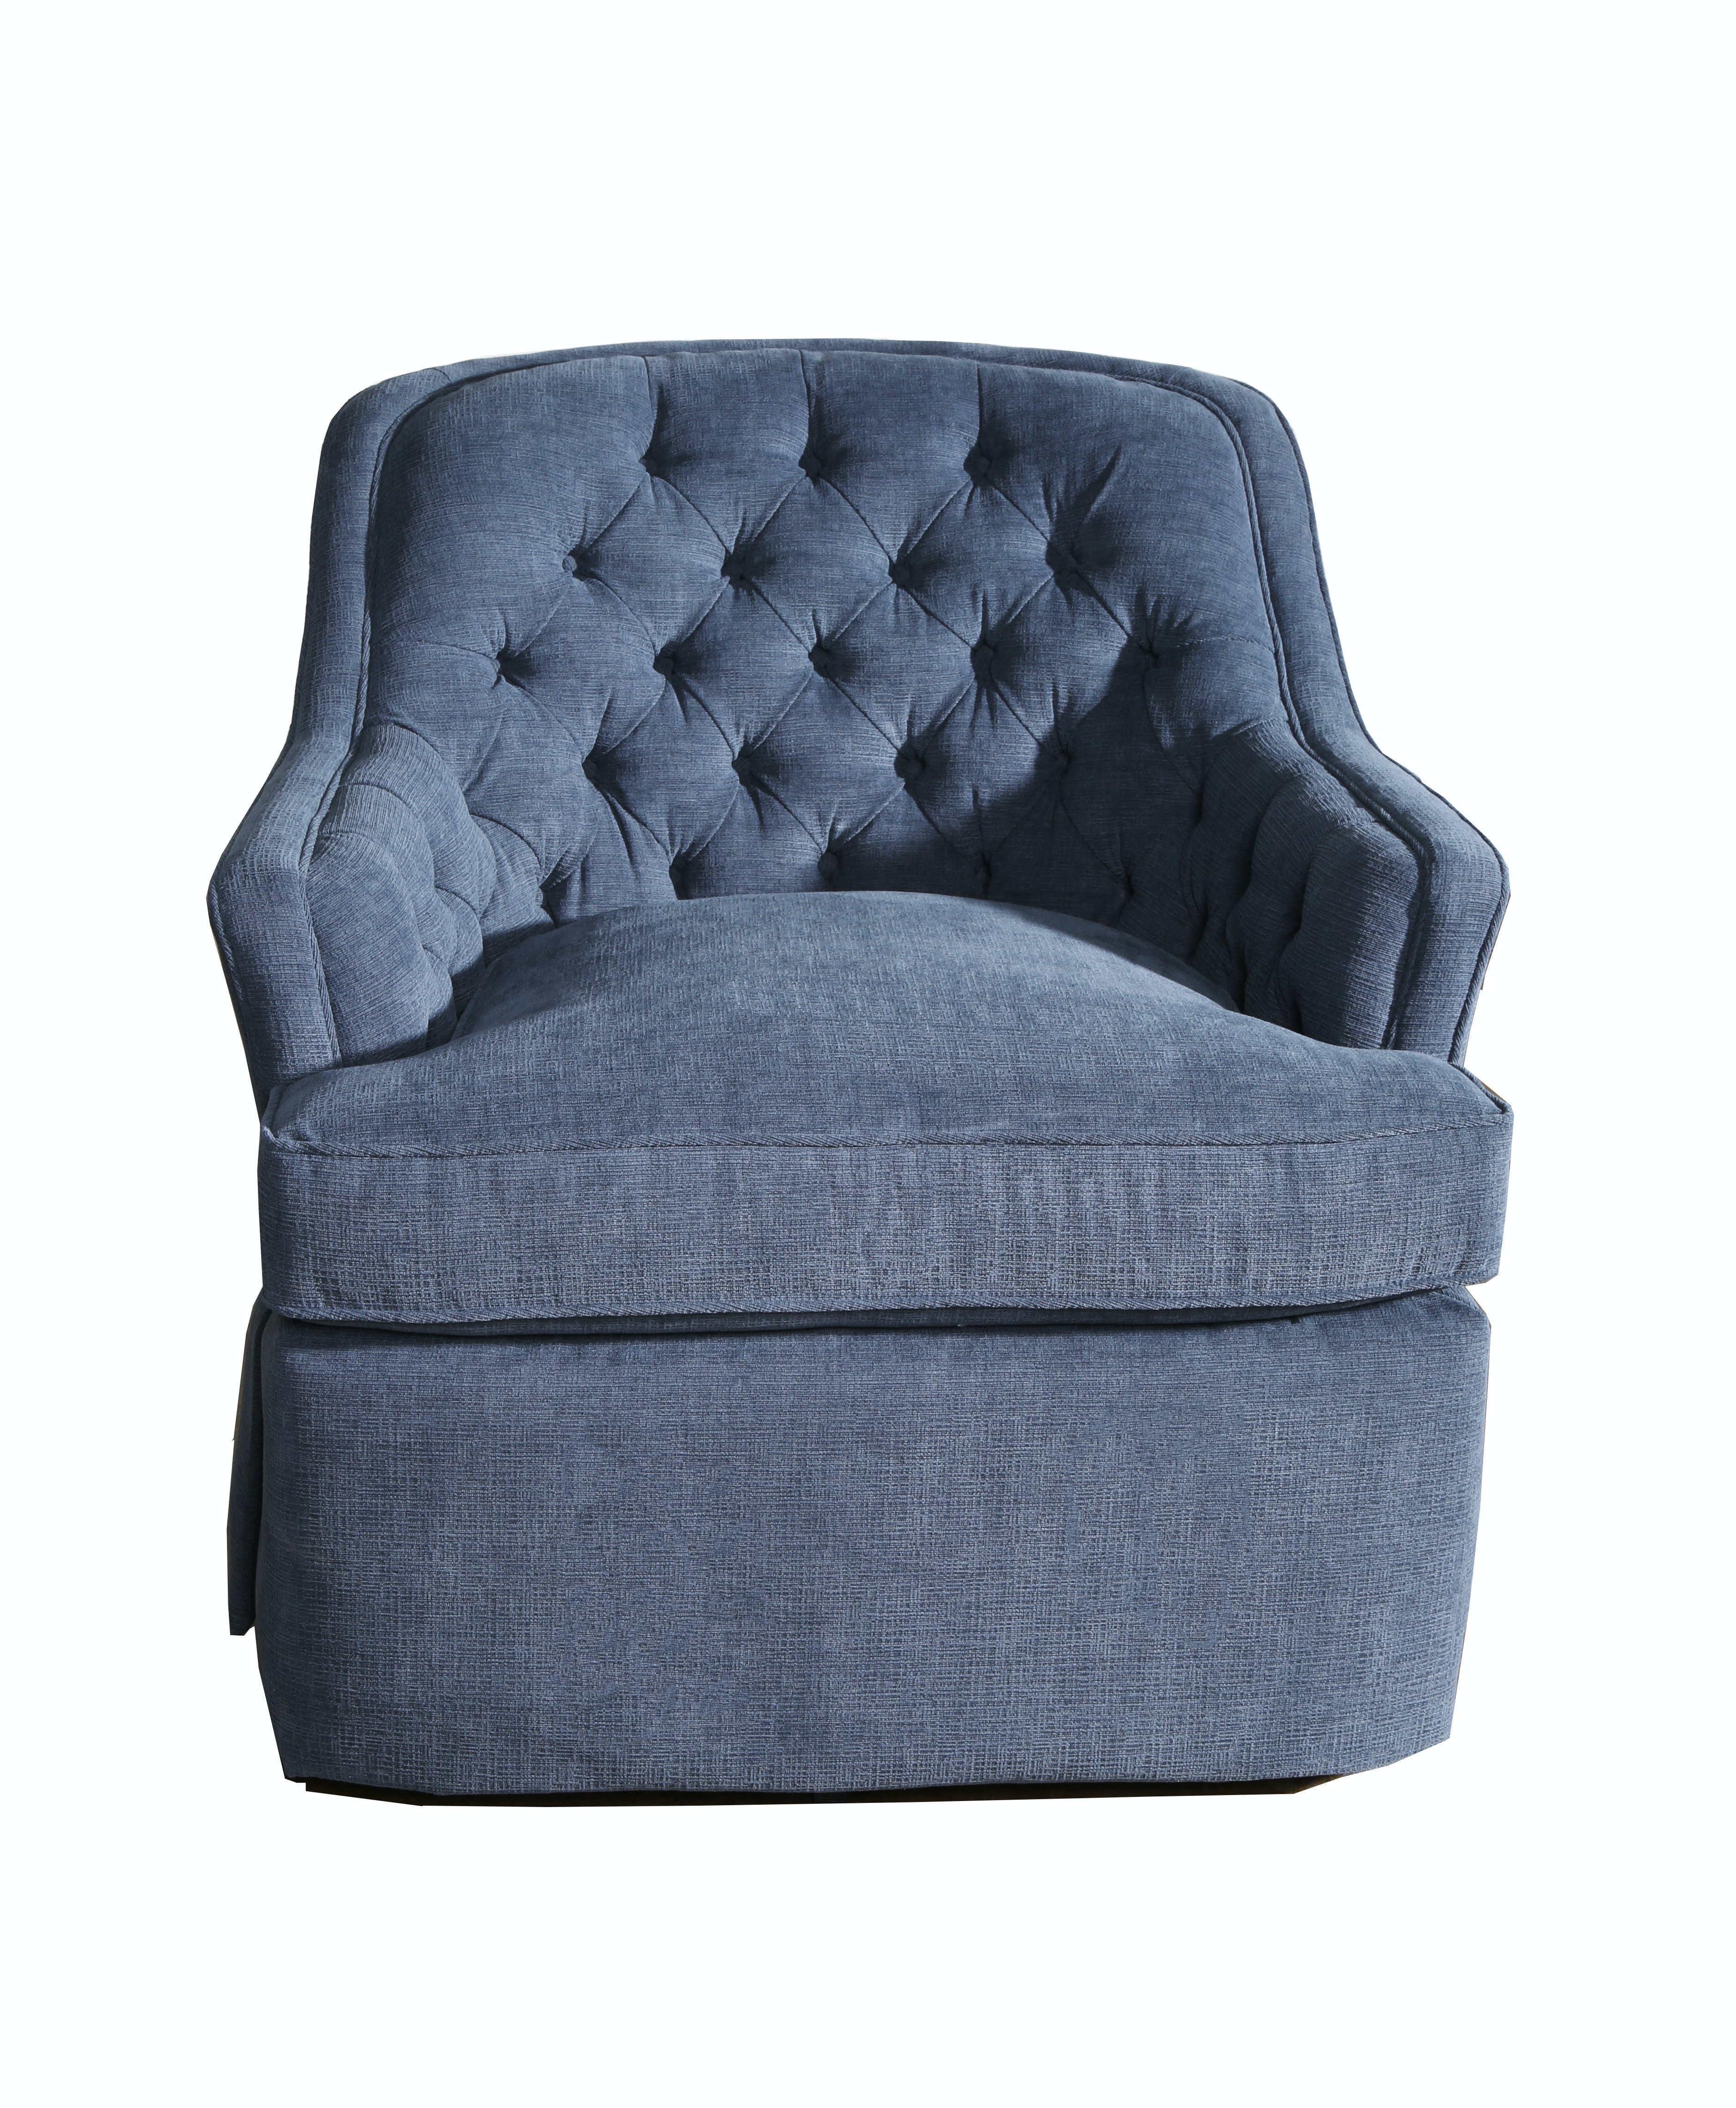 2014 at 768 215 768 in elegant collection of cushioned rocking chairs - Featured Product Ellery Tufted Swivel Rocker Chair From Walter E Smithe Furniture